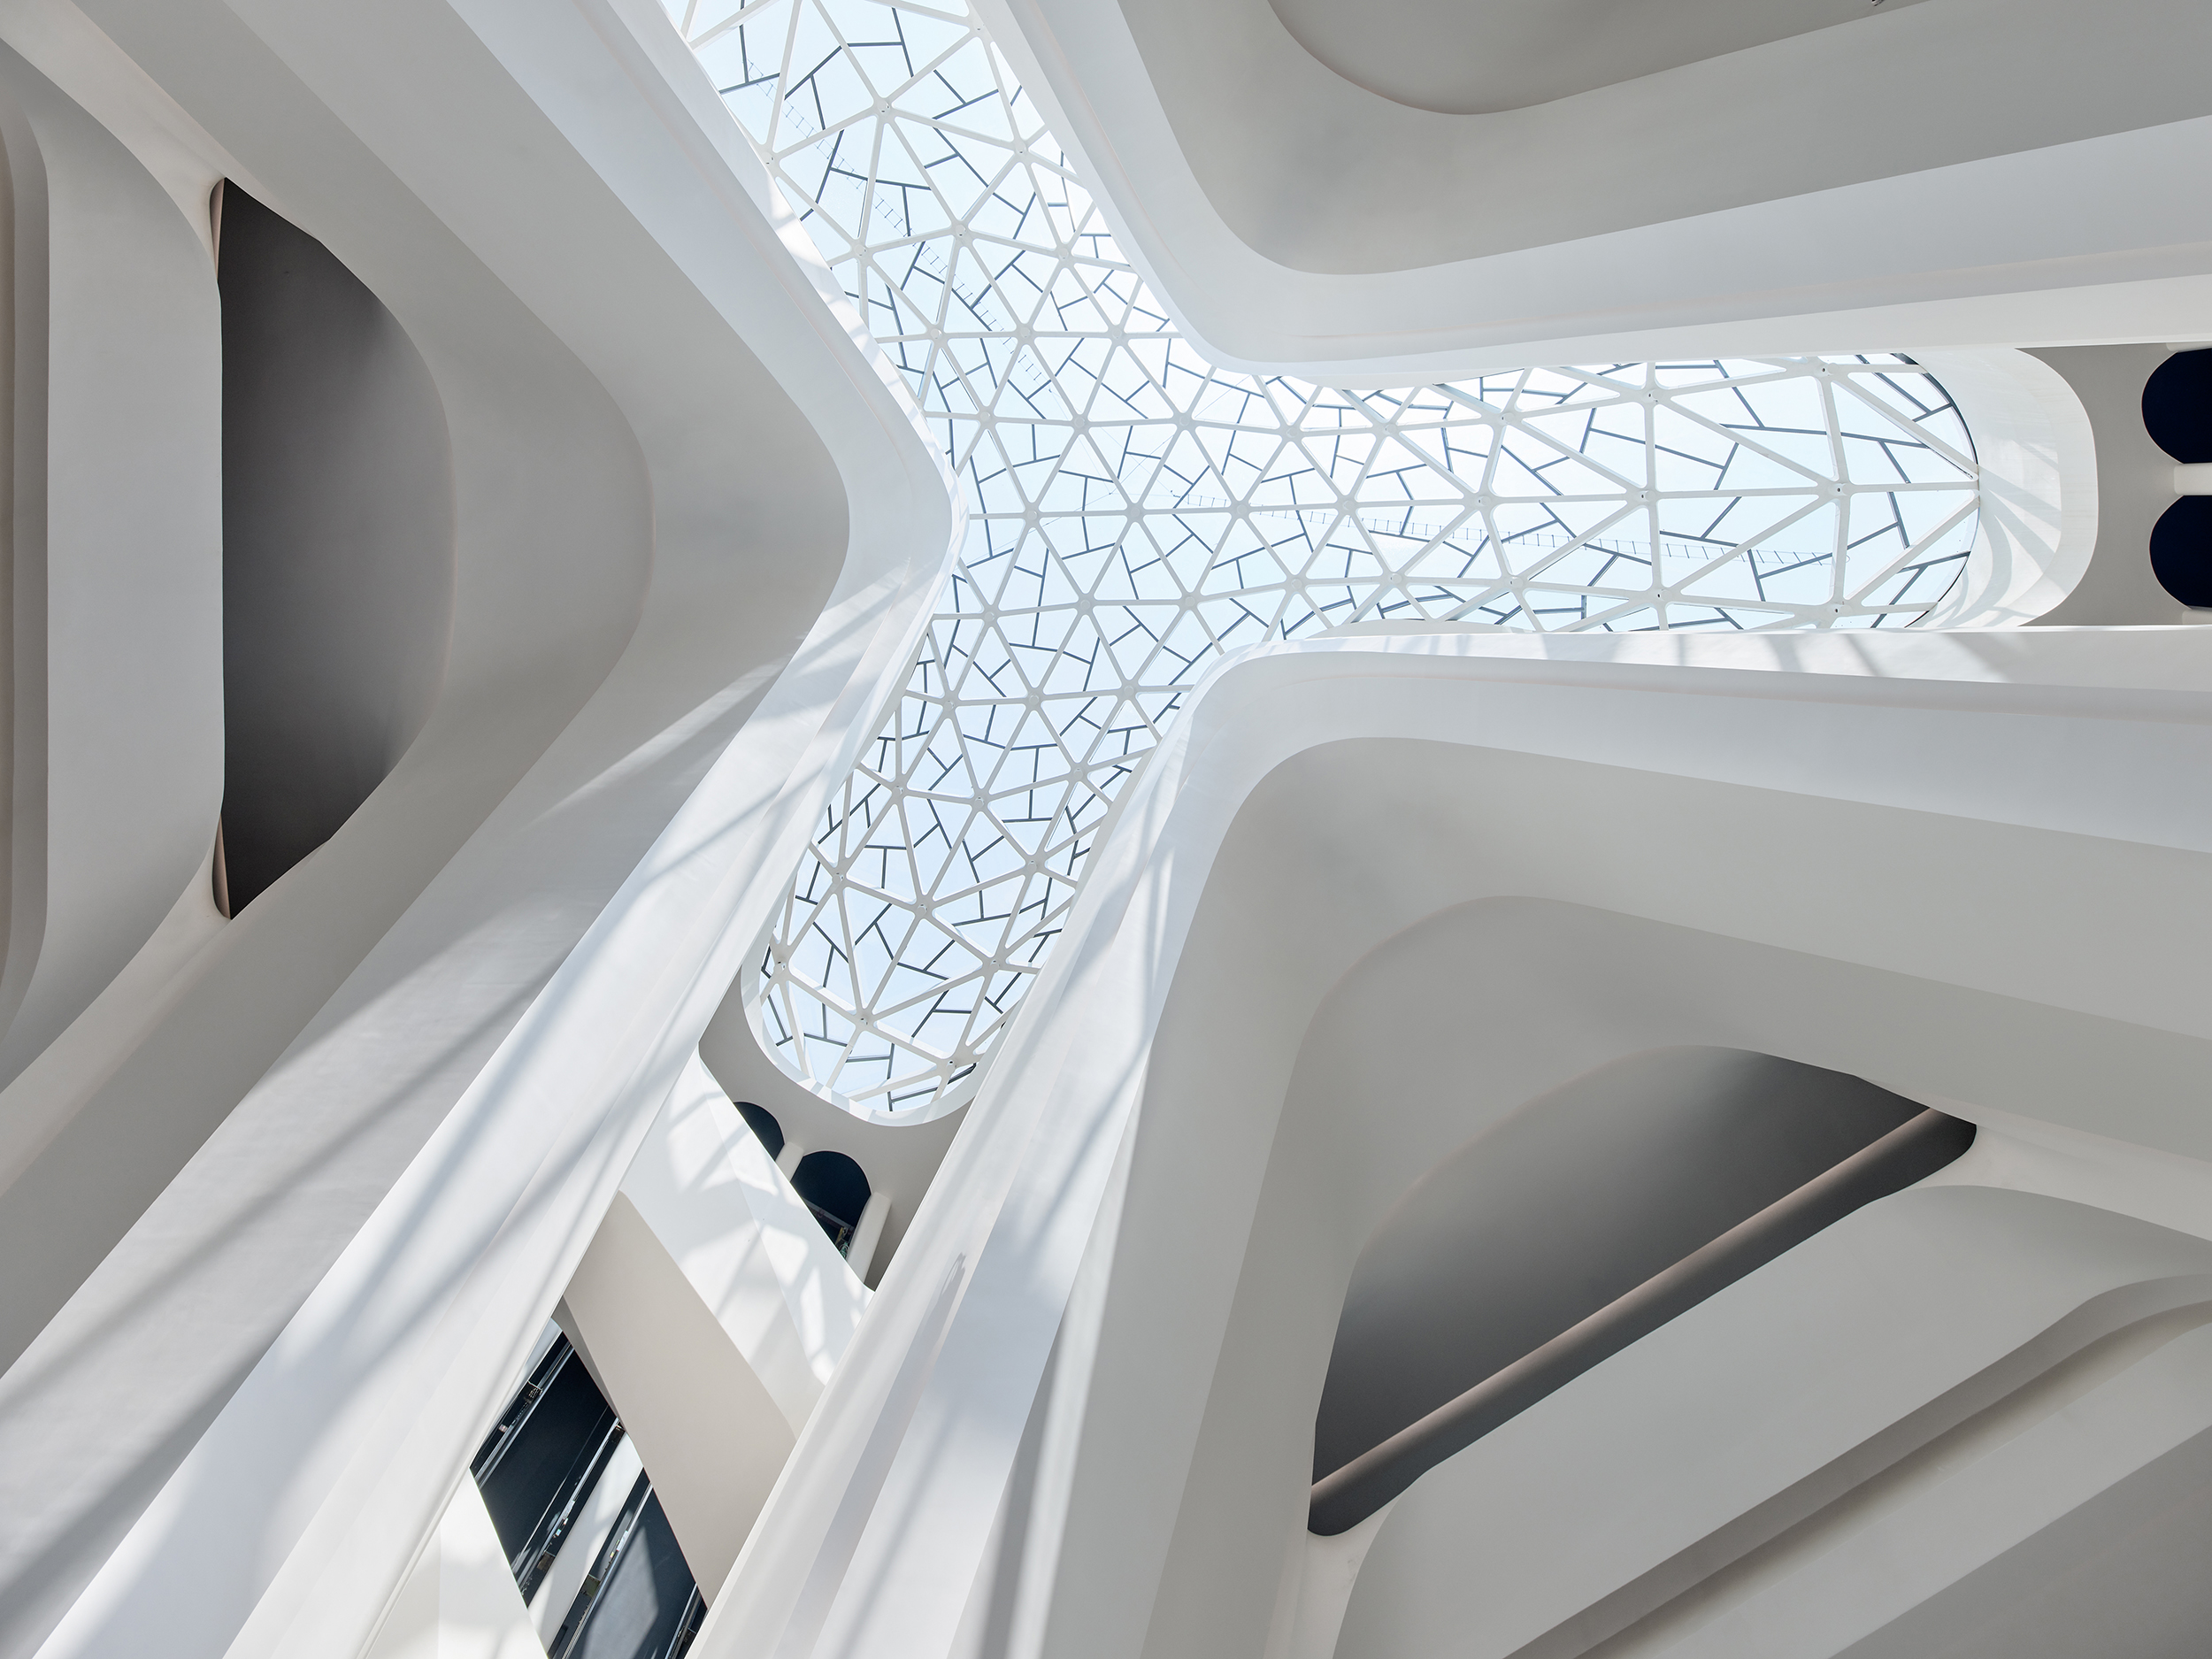 New China cultural Center by Zaha Hadid Architects - The Changsha Meixihu International Culture and Art Center